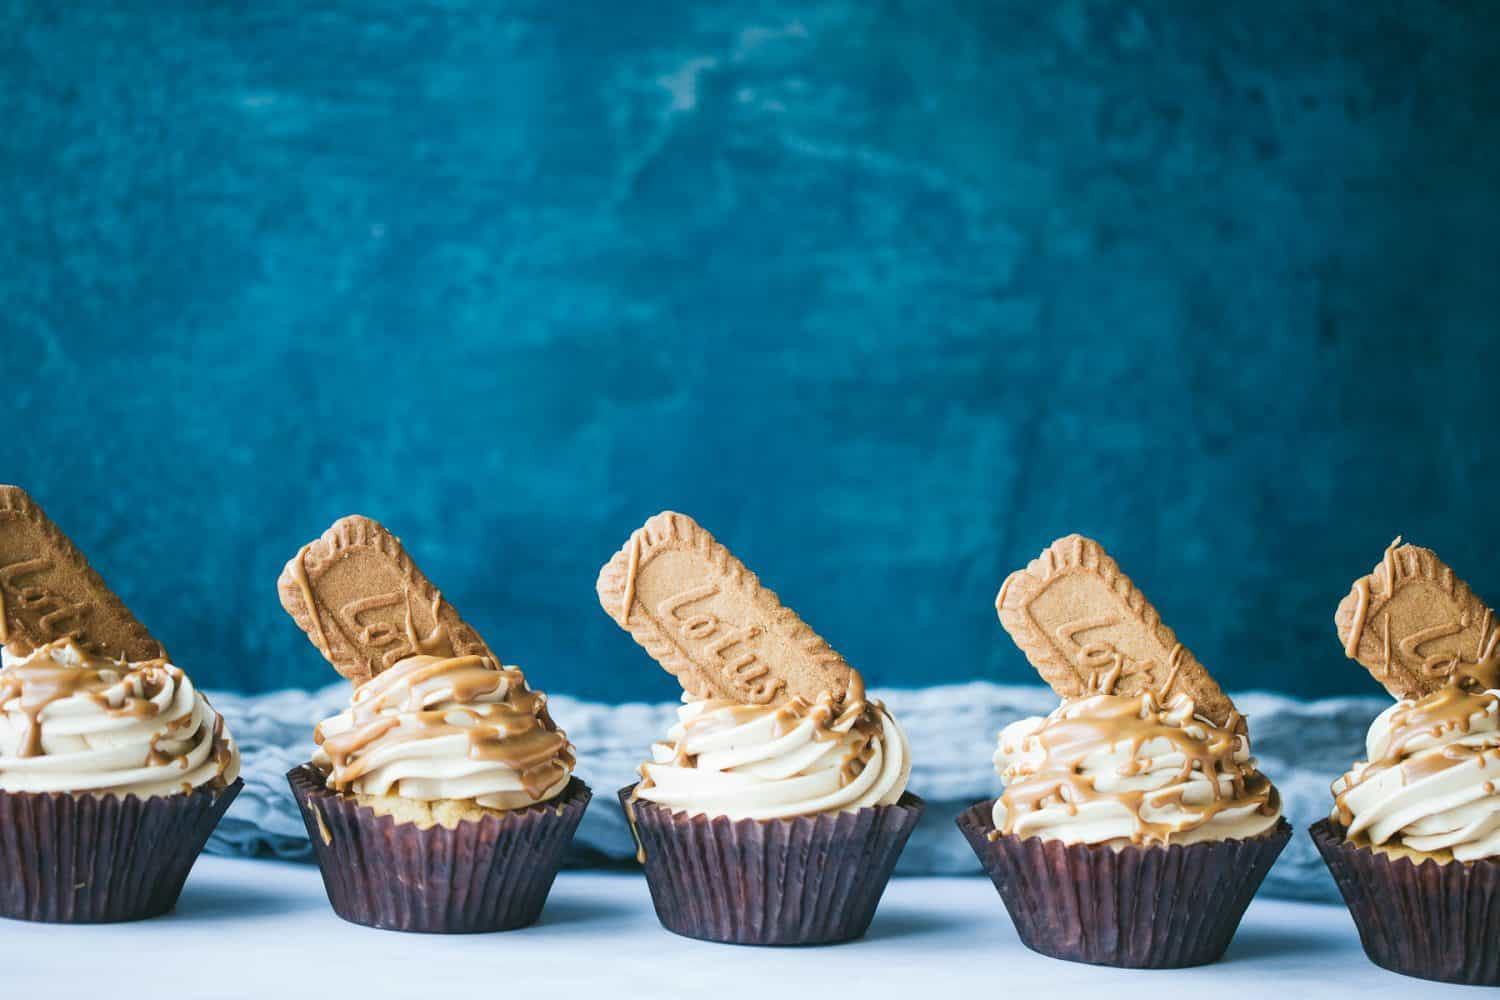 A row of five cupcakes in front of a dark blue background.